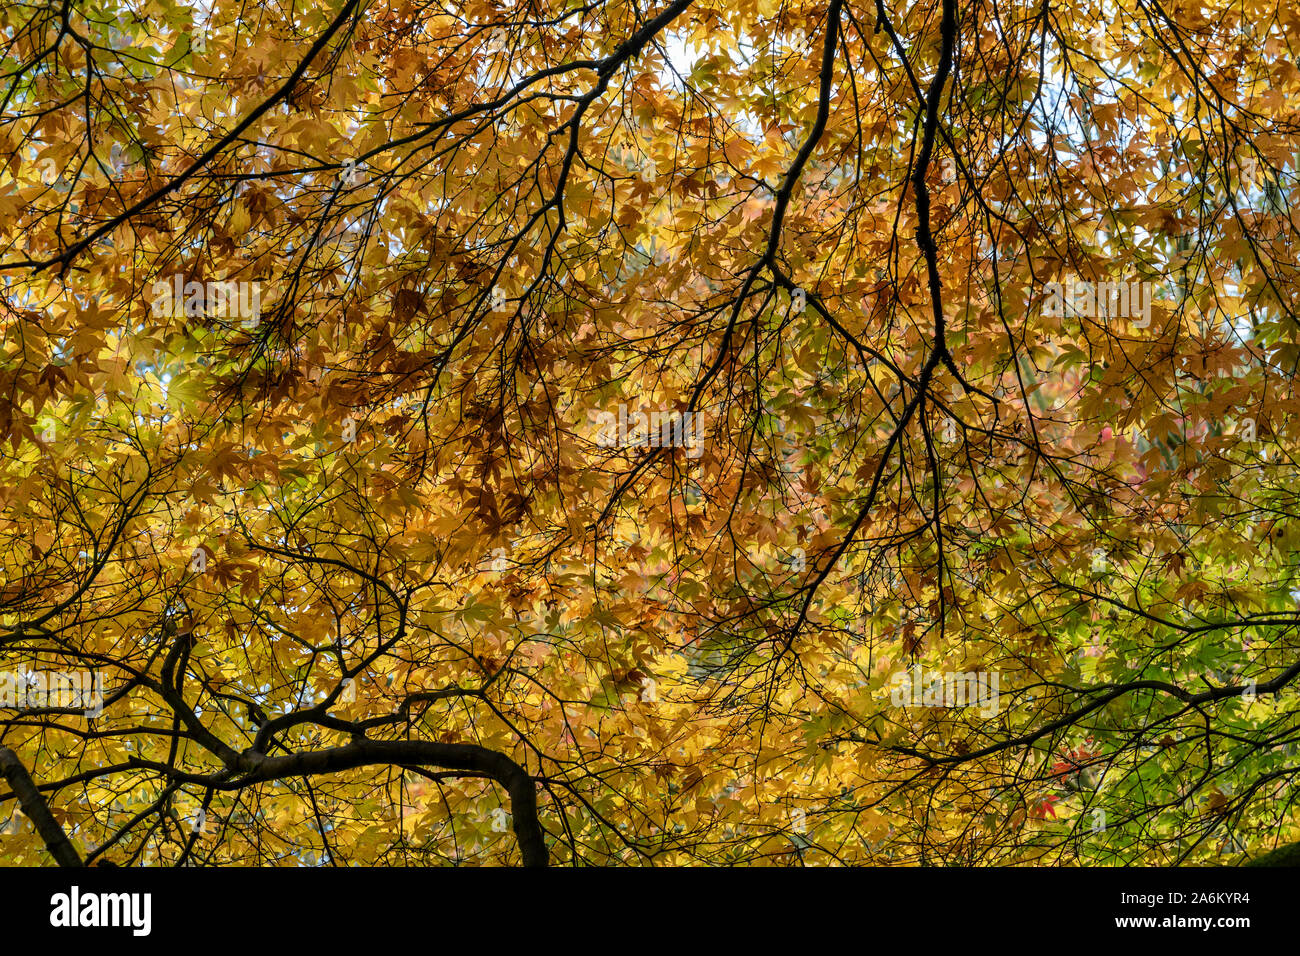 The Sunlit golden leaves of the Japanese Maple Acer amoenum in autumn at Westonbirt, Gloucestershire, England, UK Stock Photo